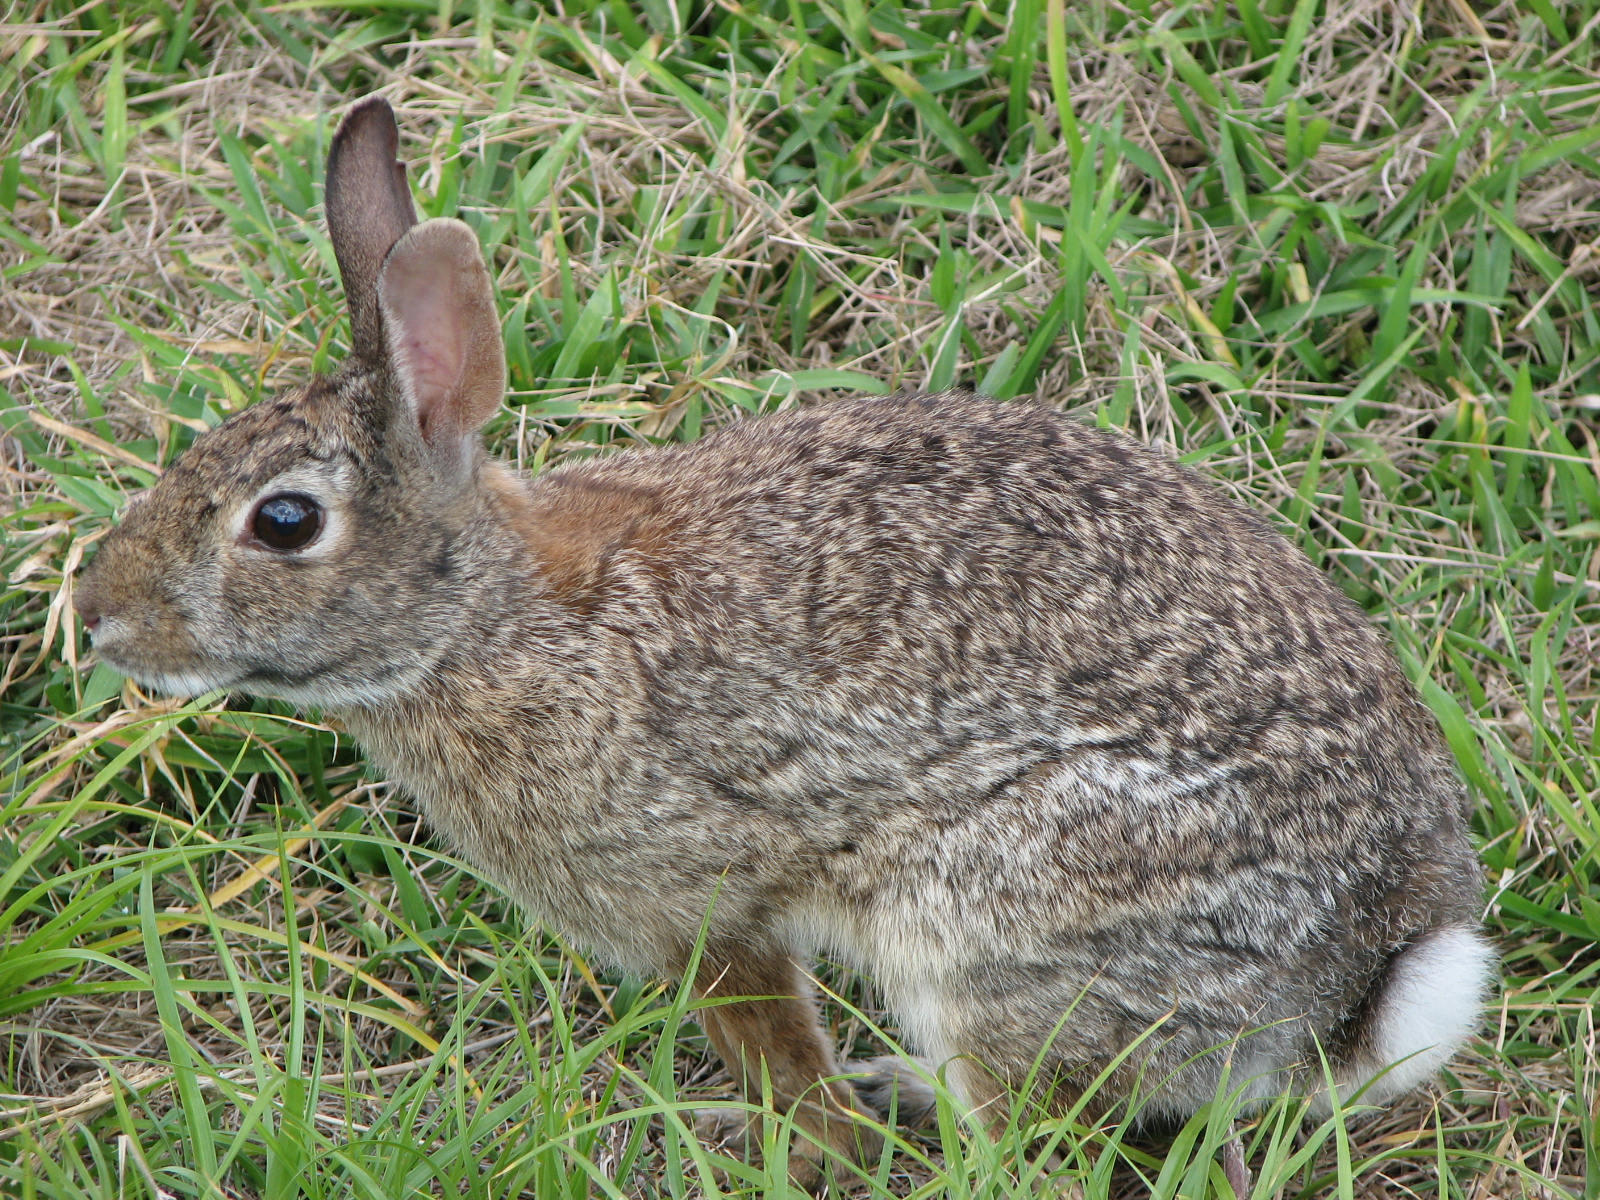 A cottontail rabbit